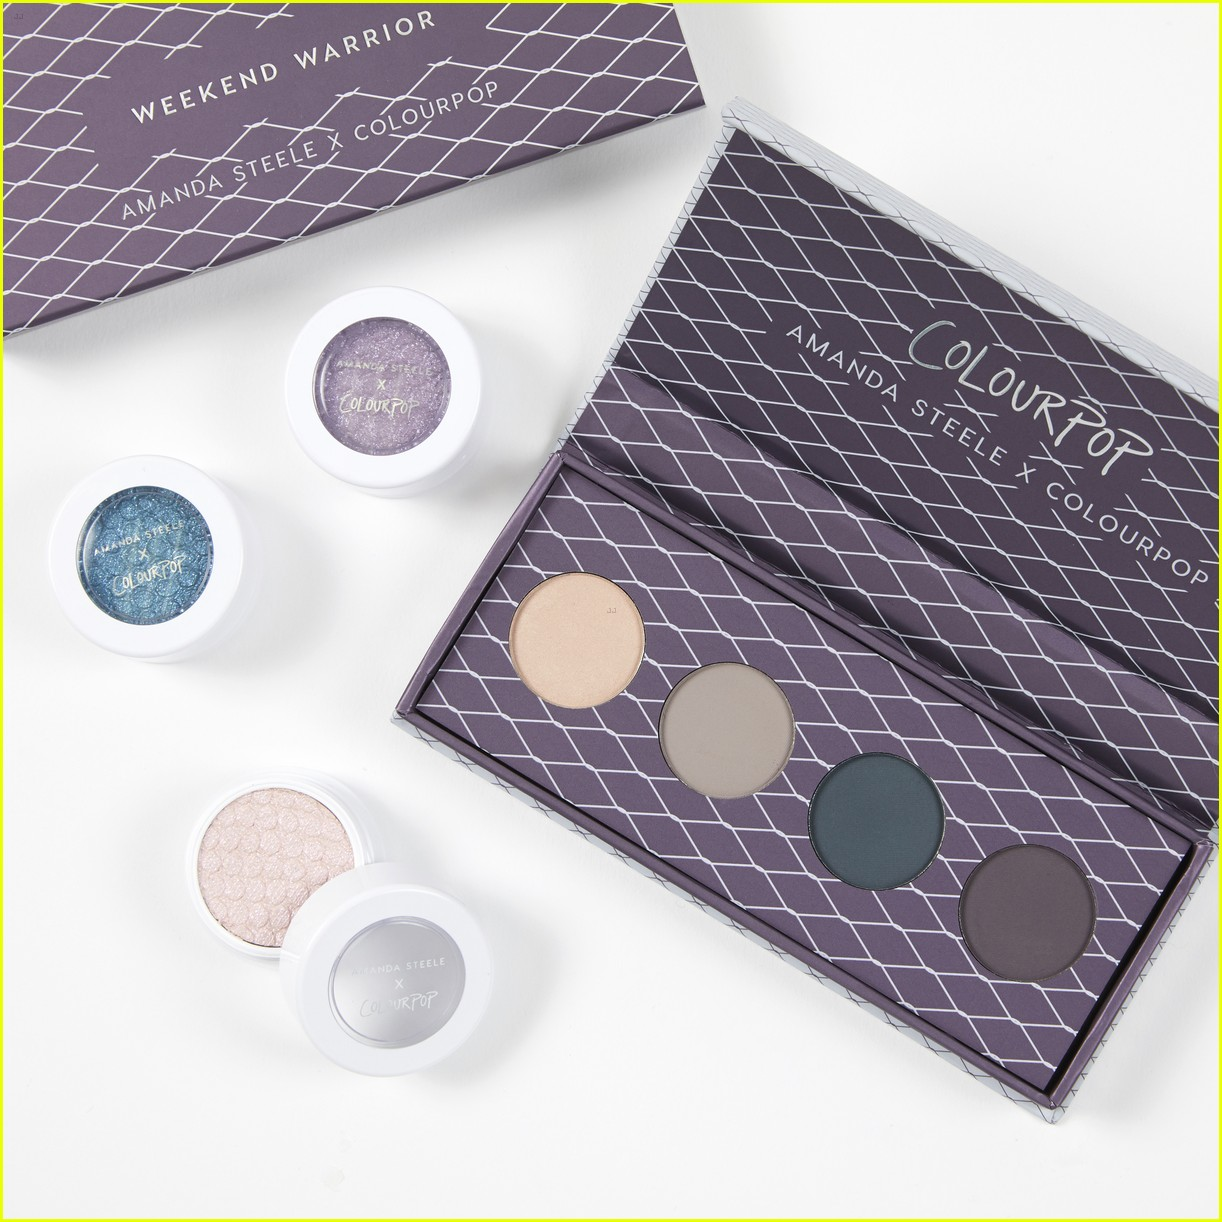 amanda steele collabs colourpop cosmetics collection 02